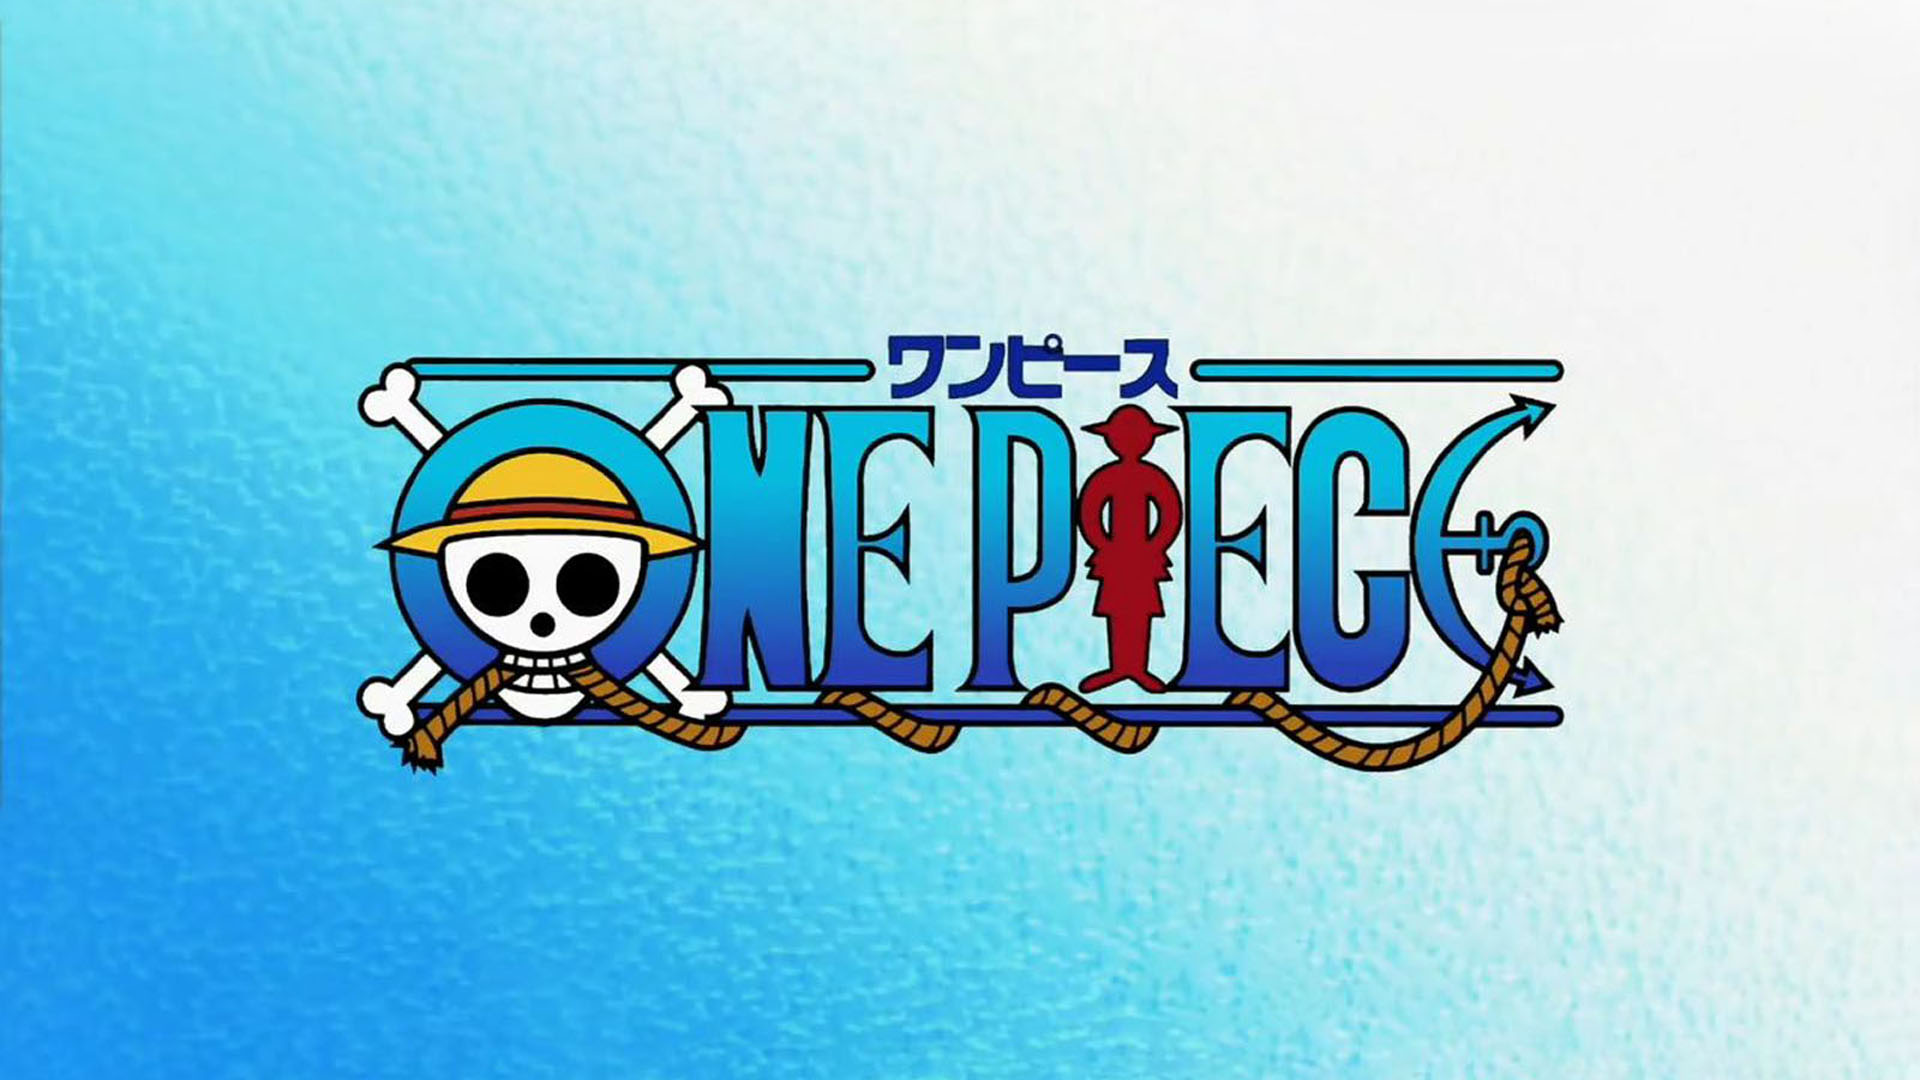 The Best One Piece Wallpaper Hd Aesthetic PNG